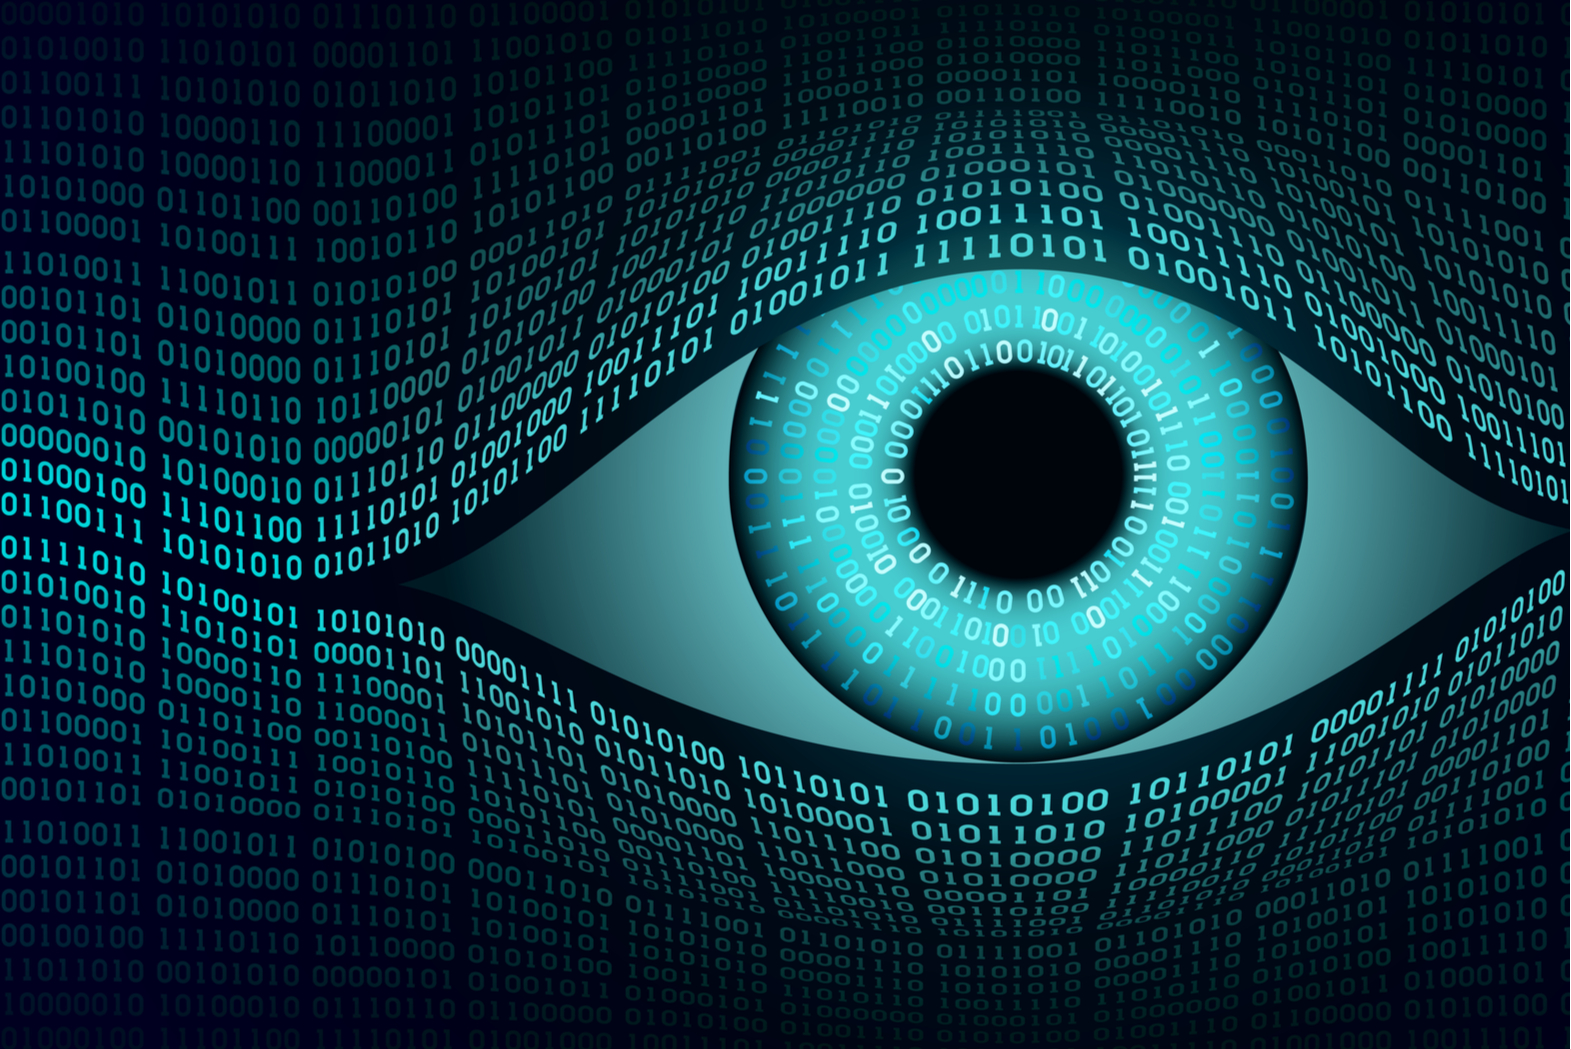 NSO Group introduces new Human Rights Policy following spyware scrutiny